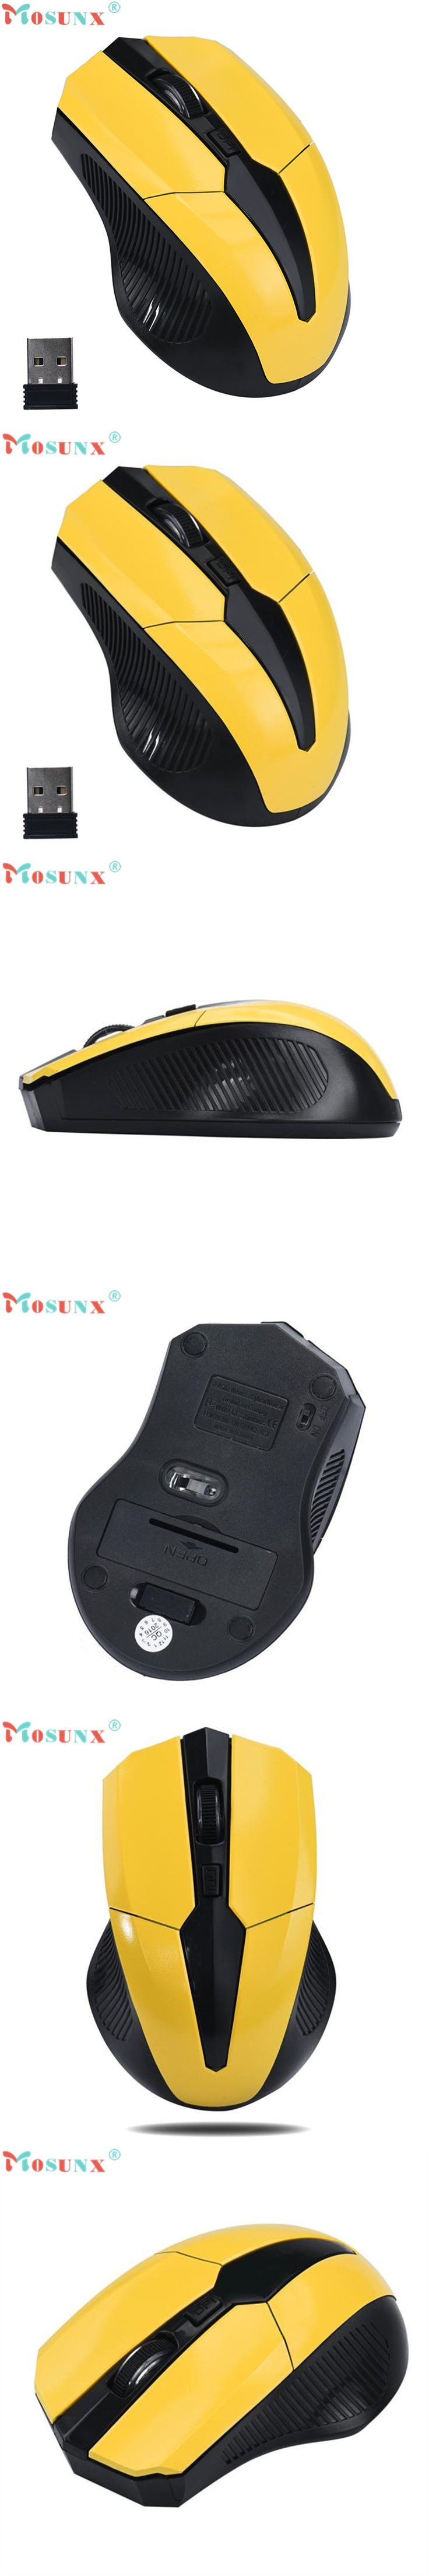 2.4GHz Mice Optical Mouse Cordless USB Receiver PC Computer Wireless for Laptop Gaming Mouse;Maus;raton para juegos SP26